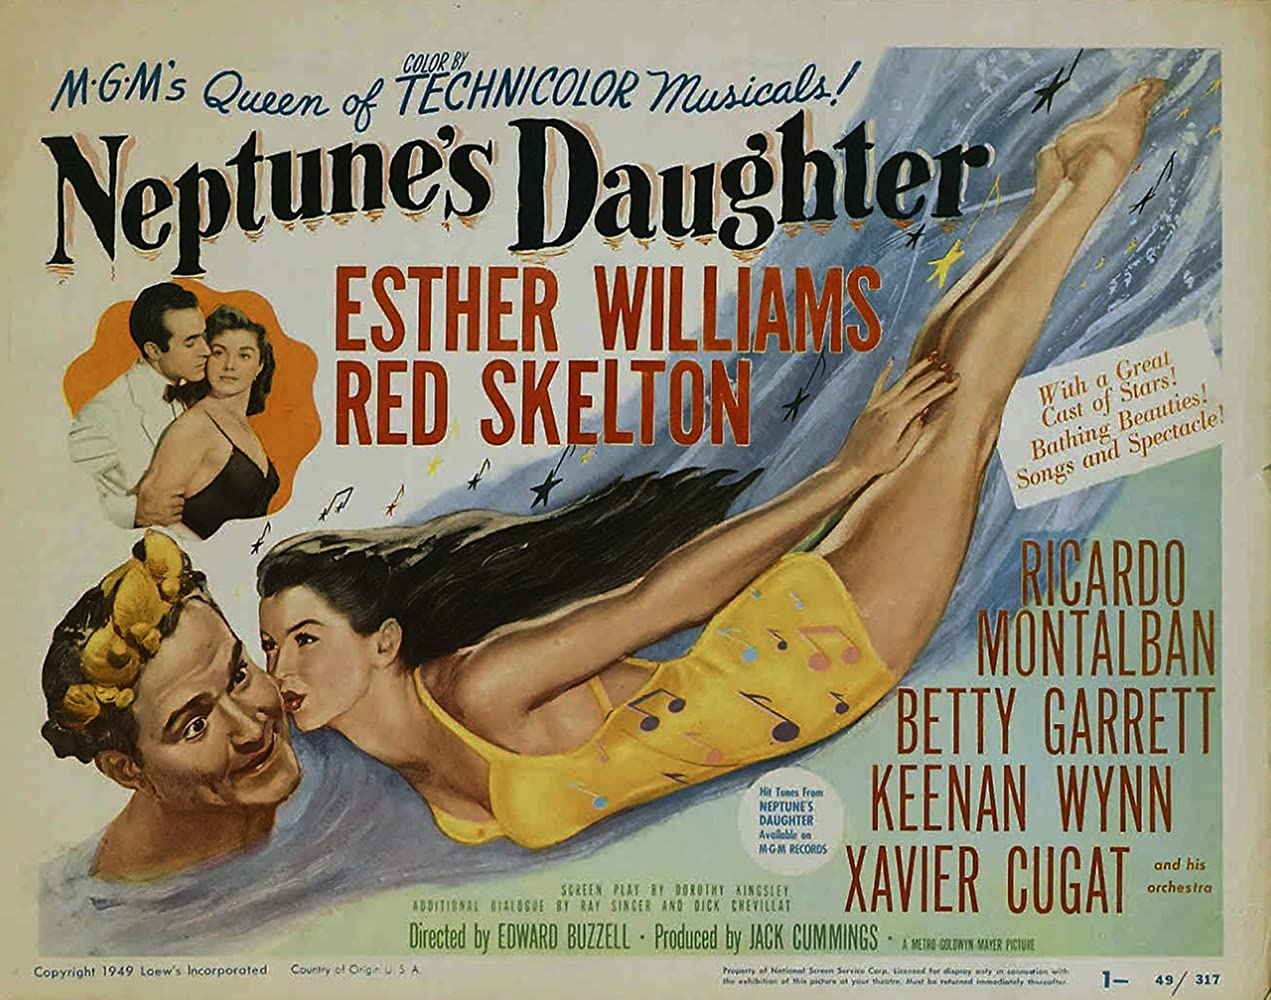 Ricardo Montalban, Red Skelton, and Esther Williams in Neptune's Daughter (1949)